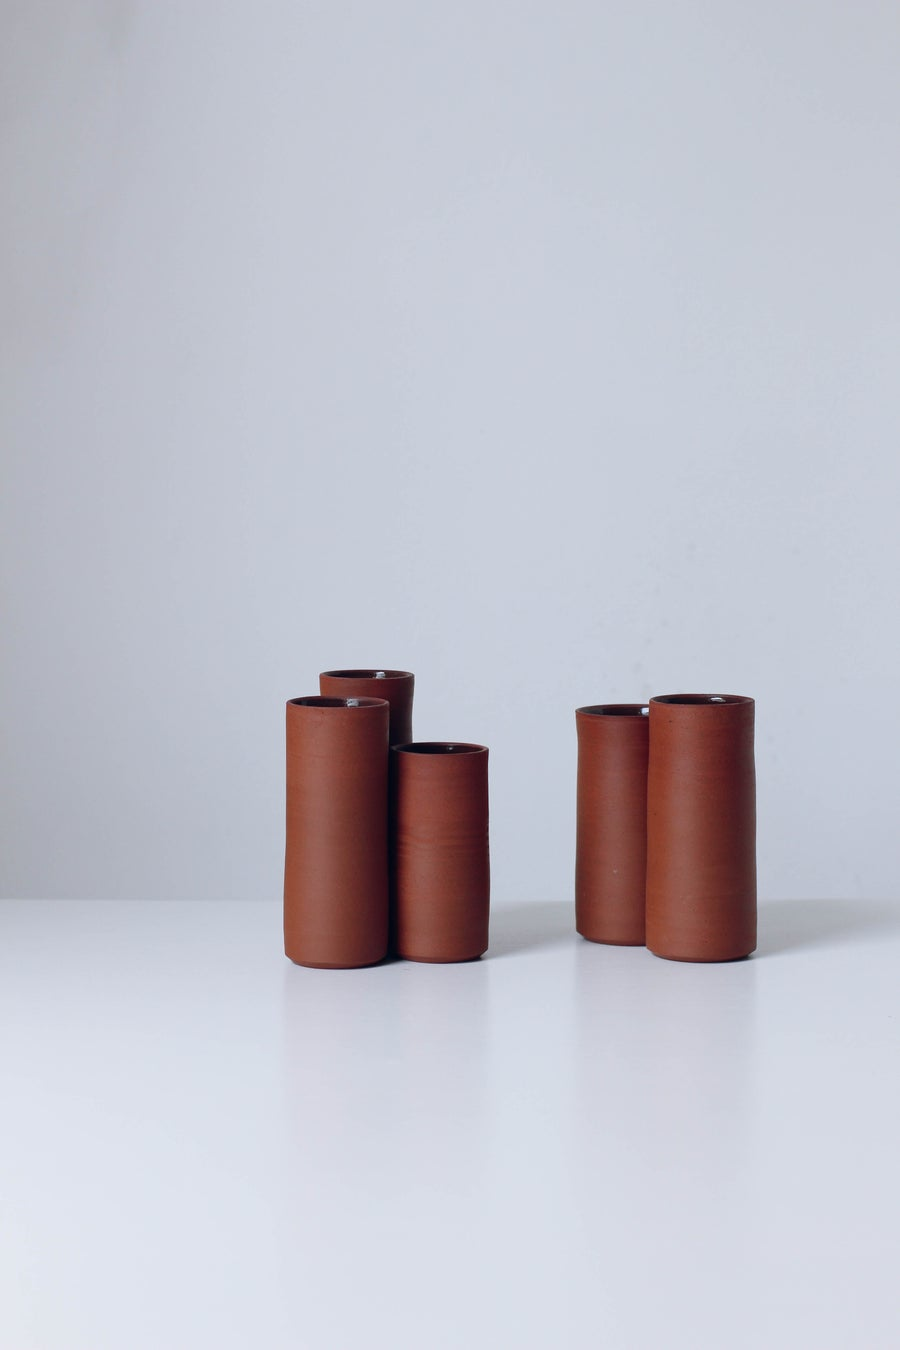 Image of Small Vases